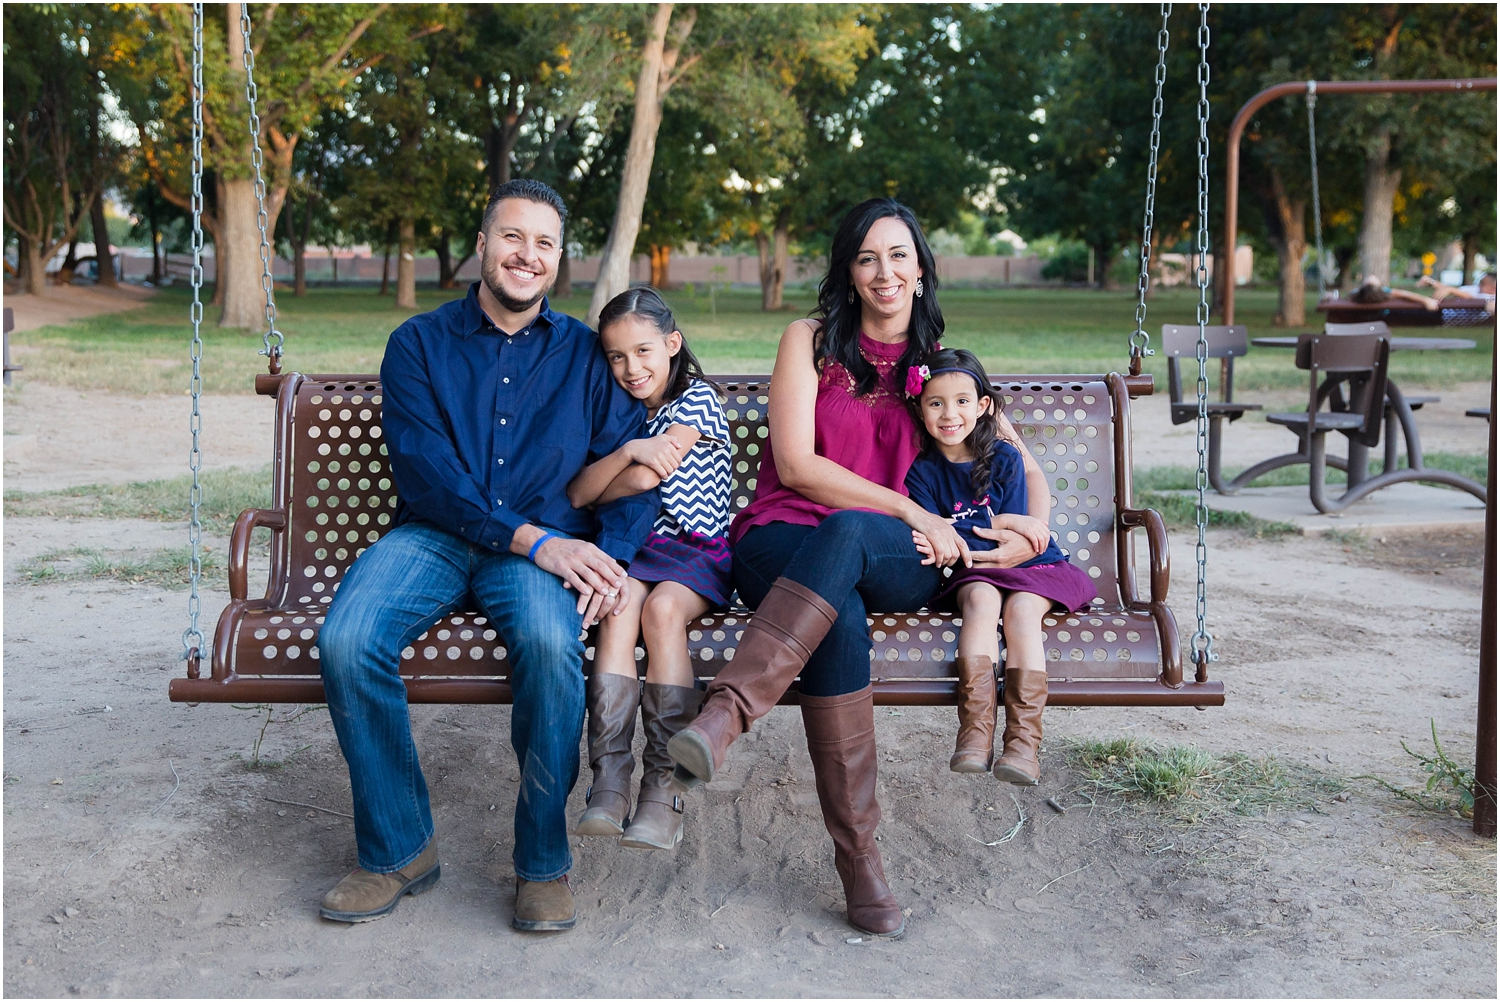 Bachechi Open Space Large Family Photography | Albuquerque New Mexico | Family Photography